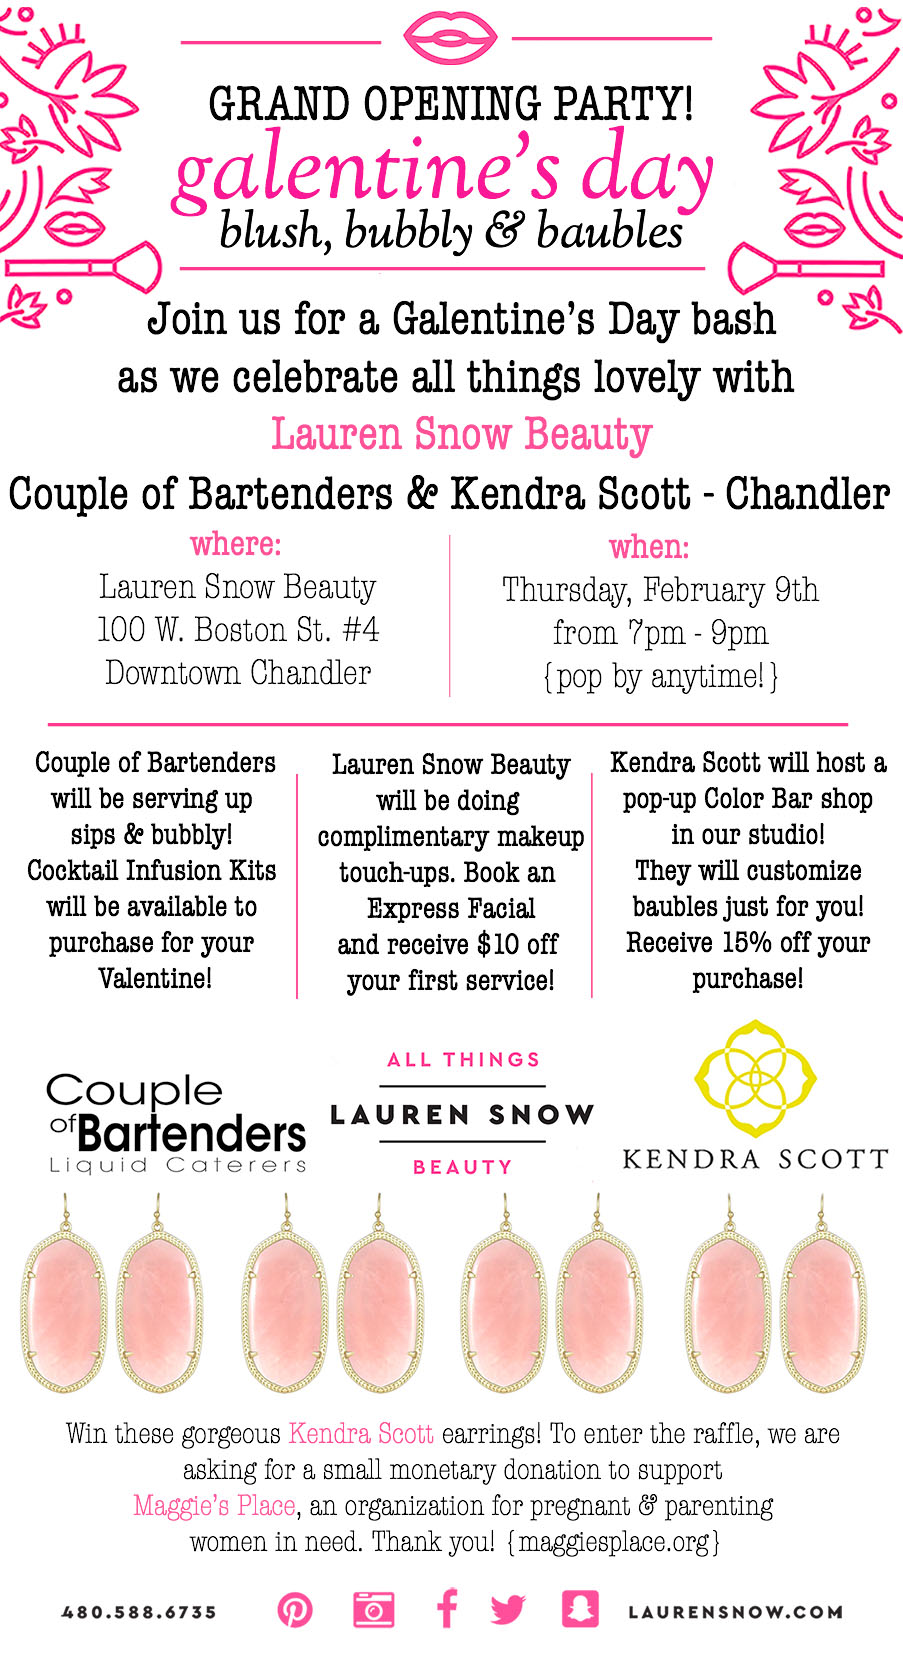 Lauren Snow's Galentine Bash on Thursday is a must for the ladies.